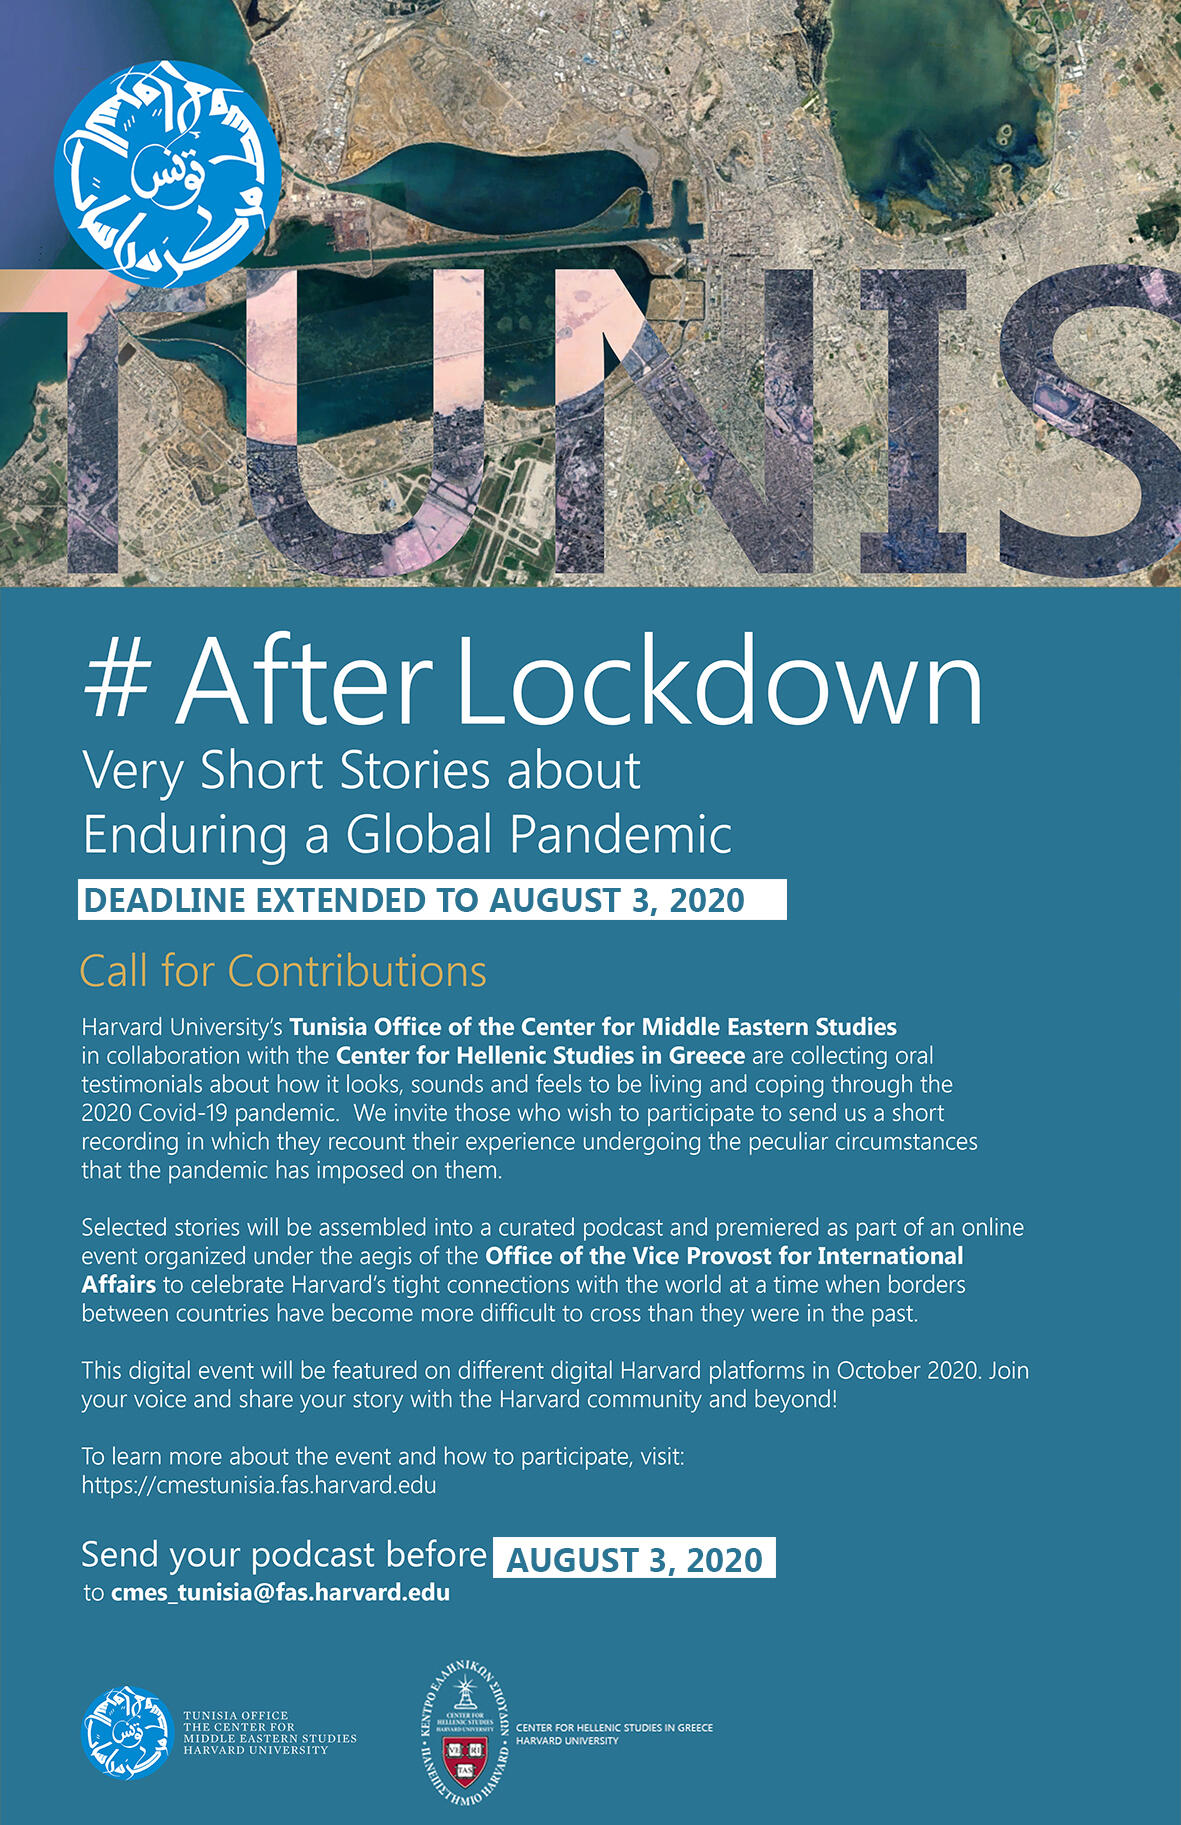 After Lockdown Deadline Extended